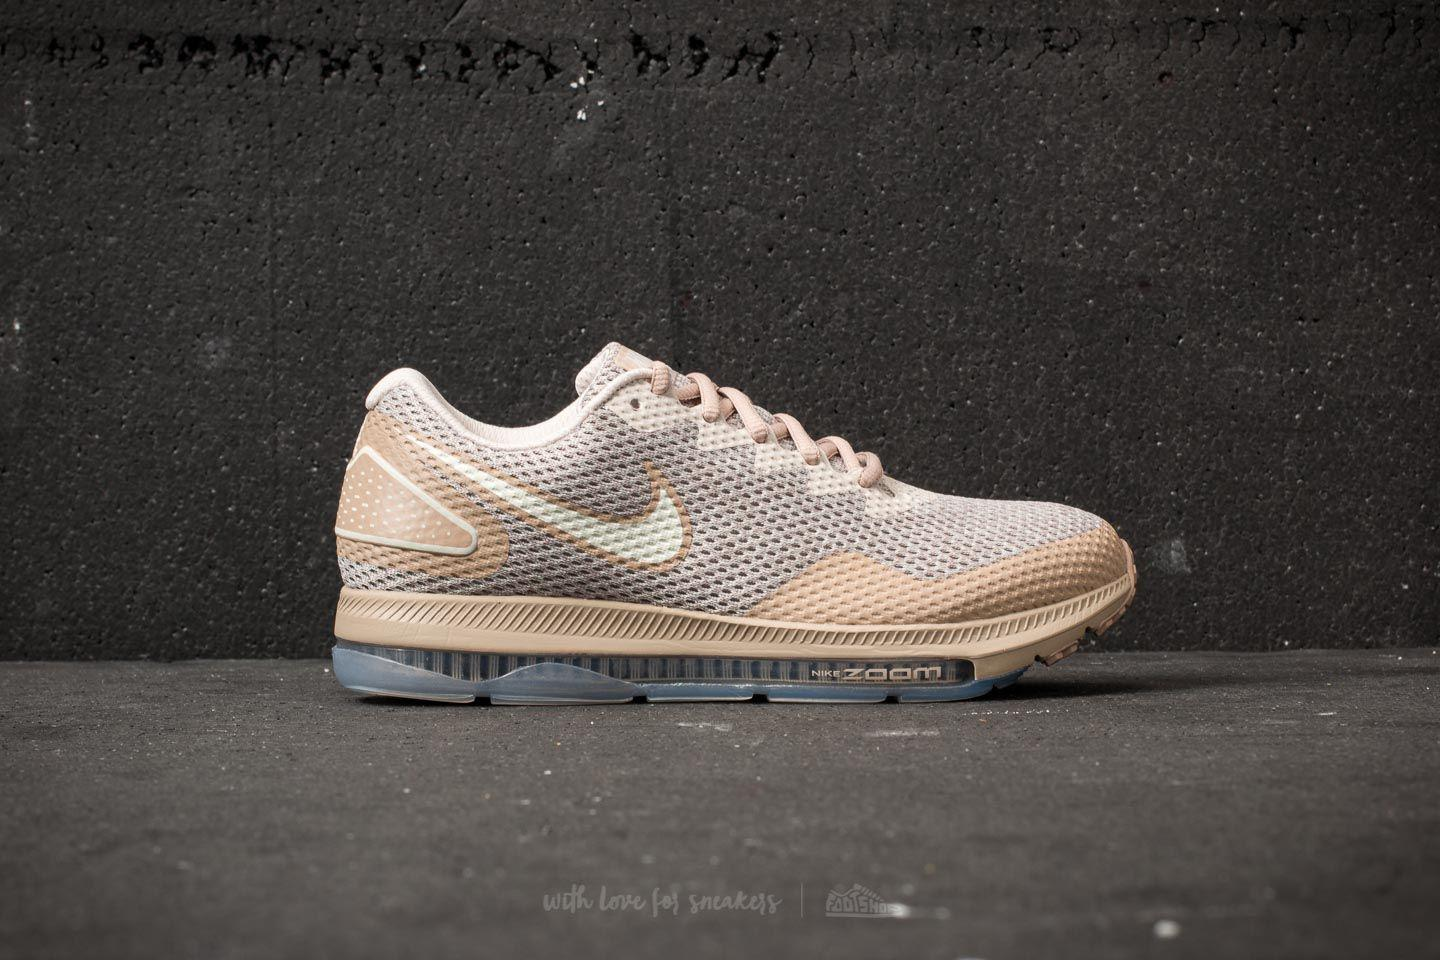 42964b4bbc72d Lyst - Nike Zoom All Out Low 2 W Moon Particle  Sail-sand